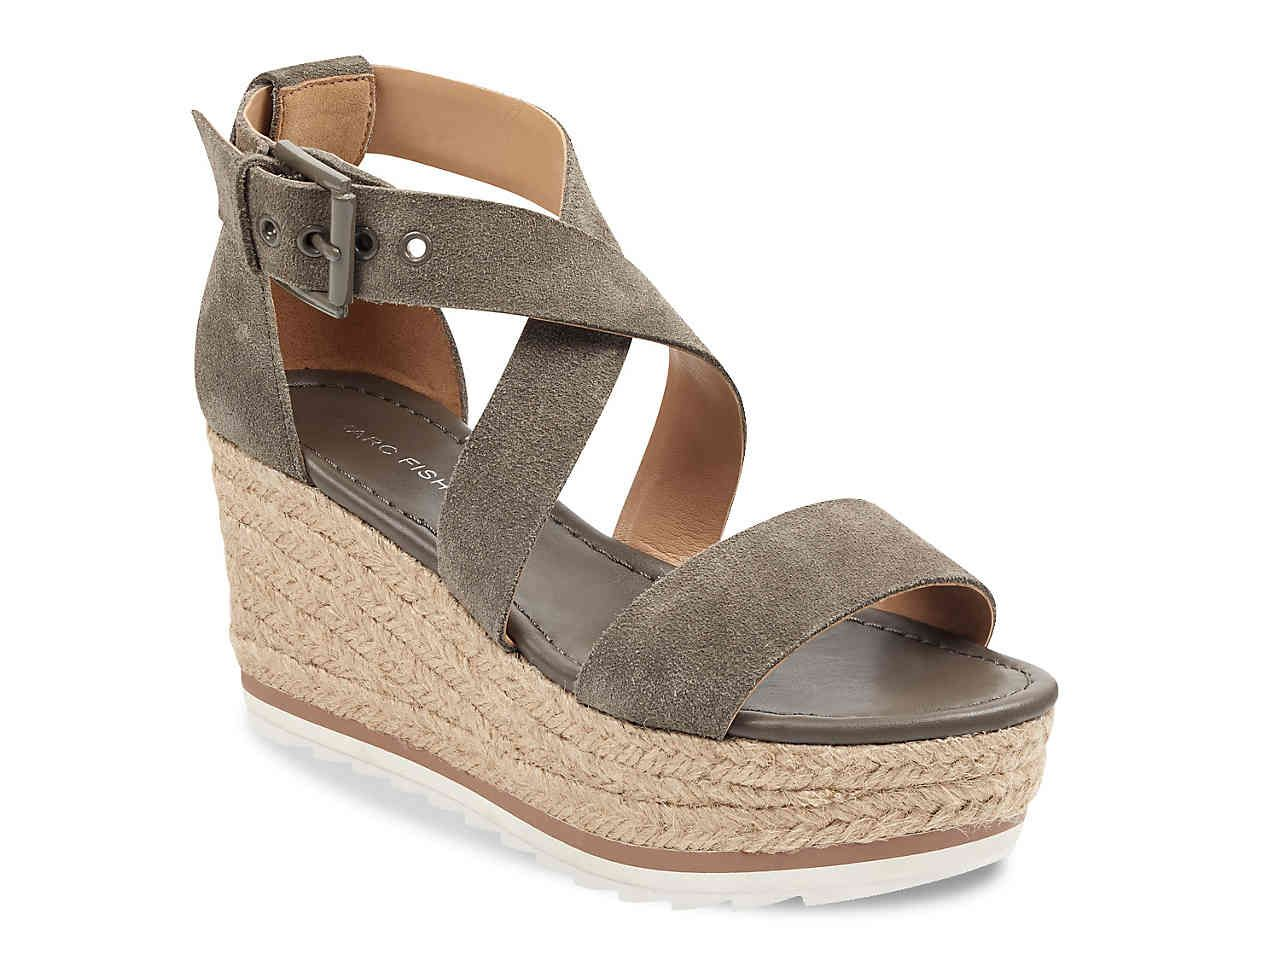 87e0128cb6f7 Marc Fisher Zaide Espadrille Wedge Sandal Women s Shoes